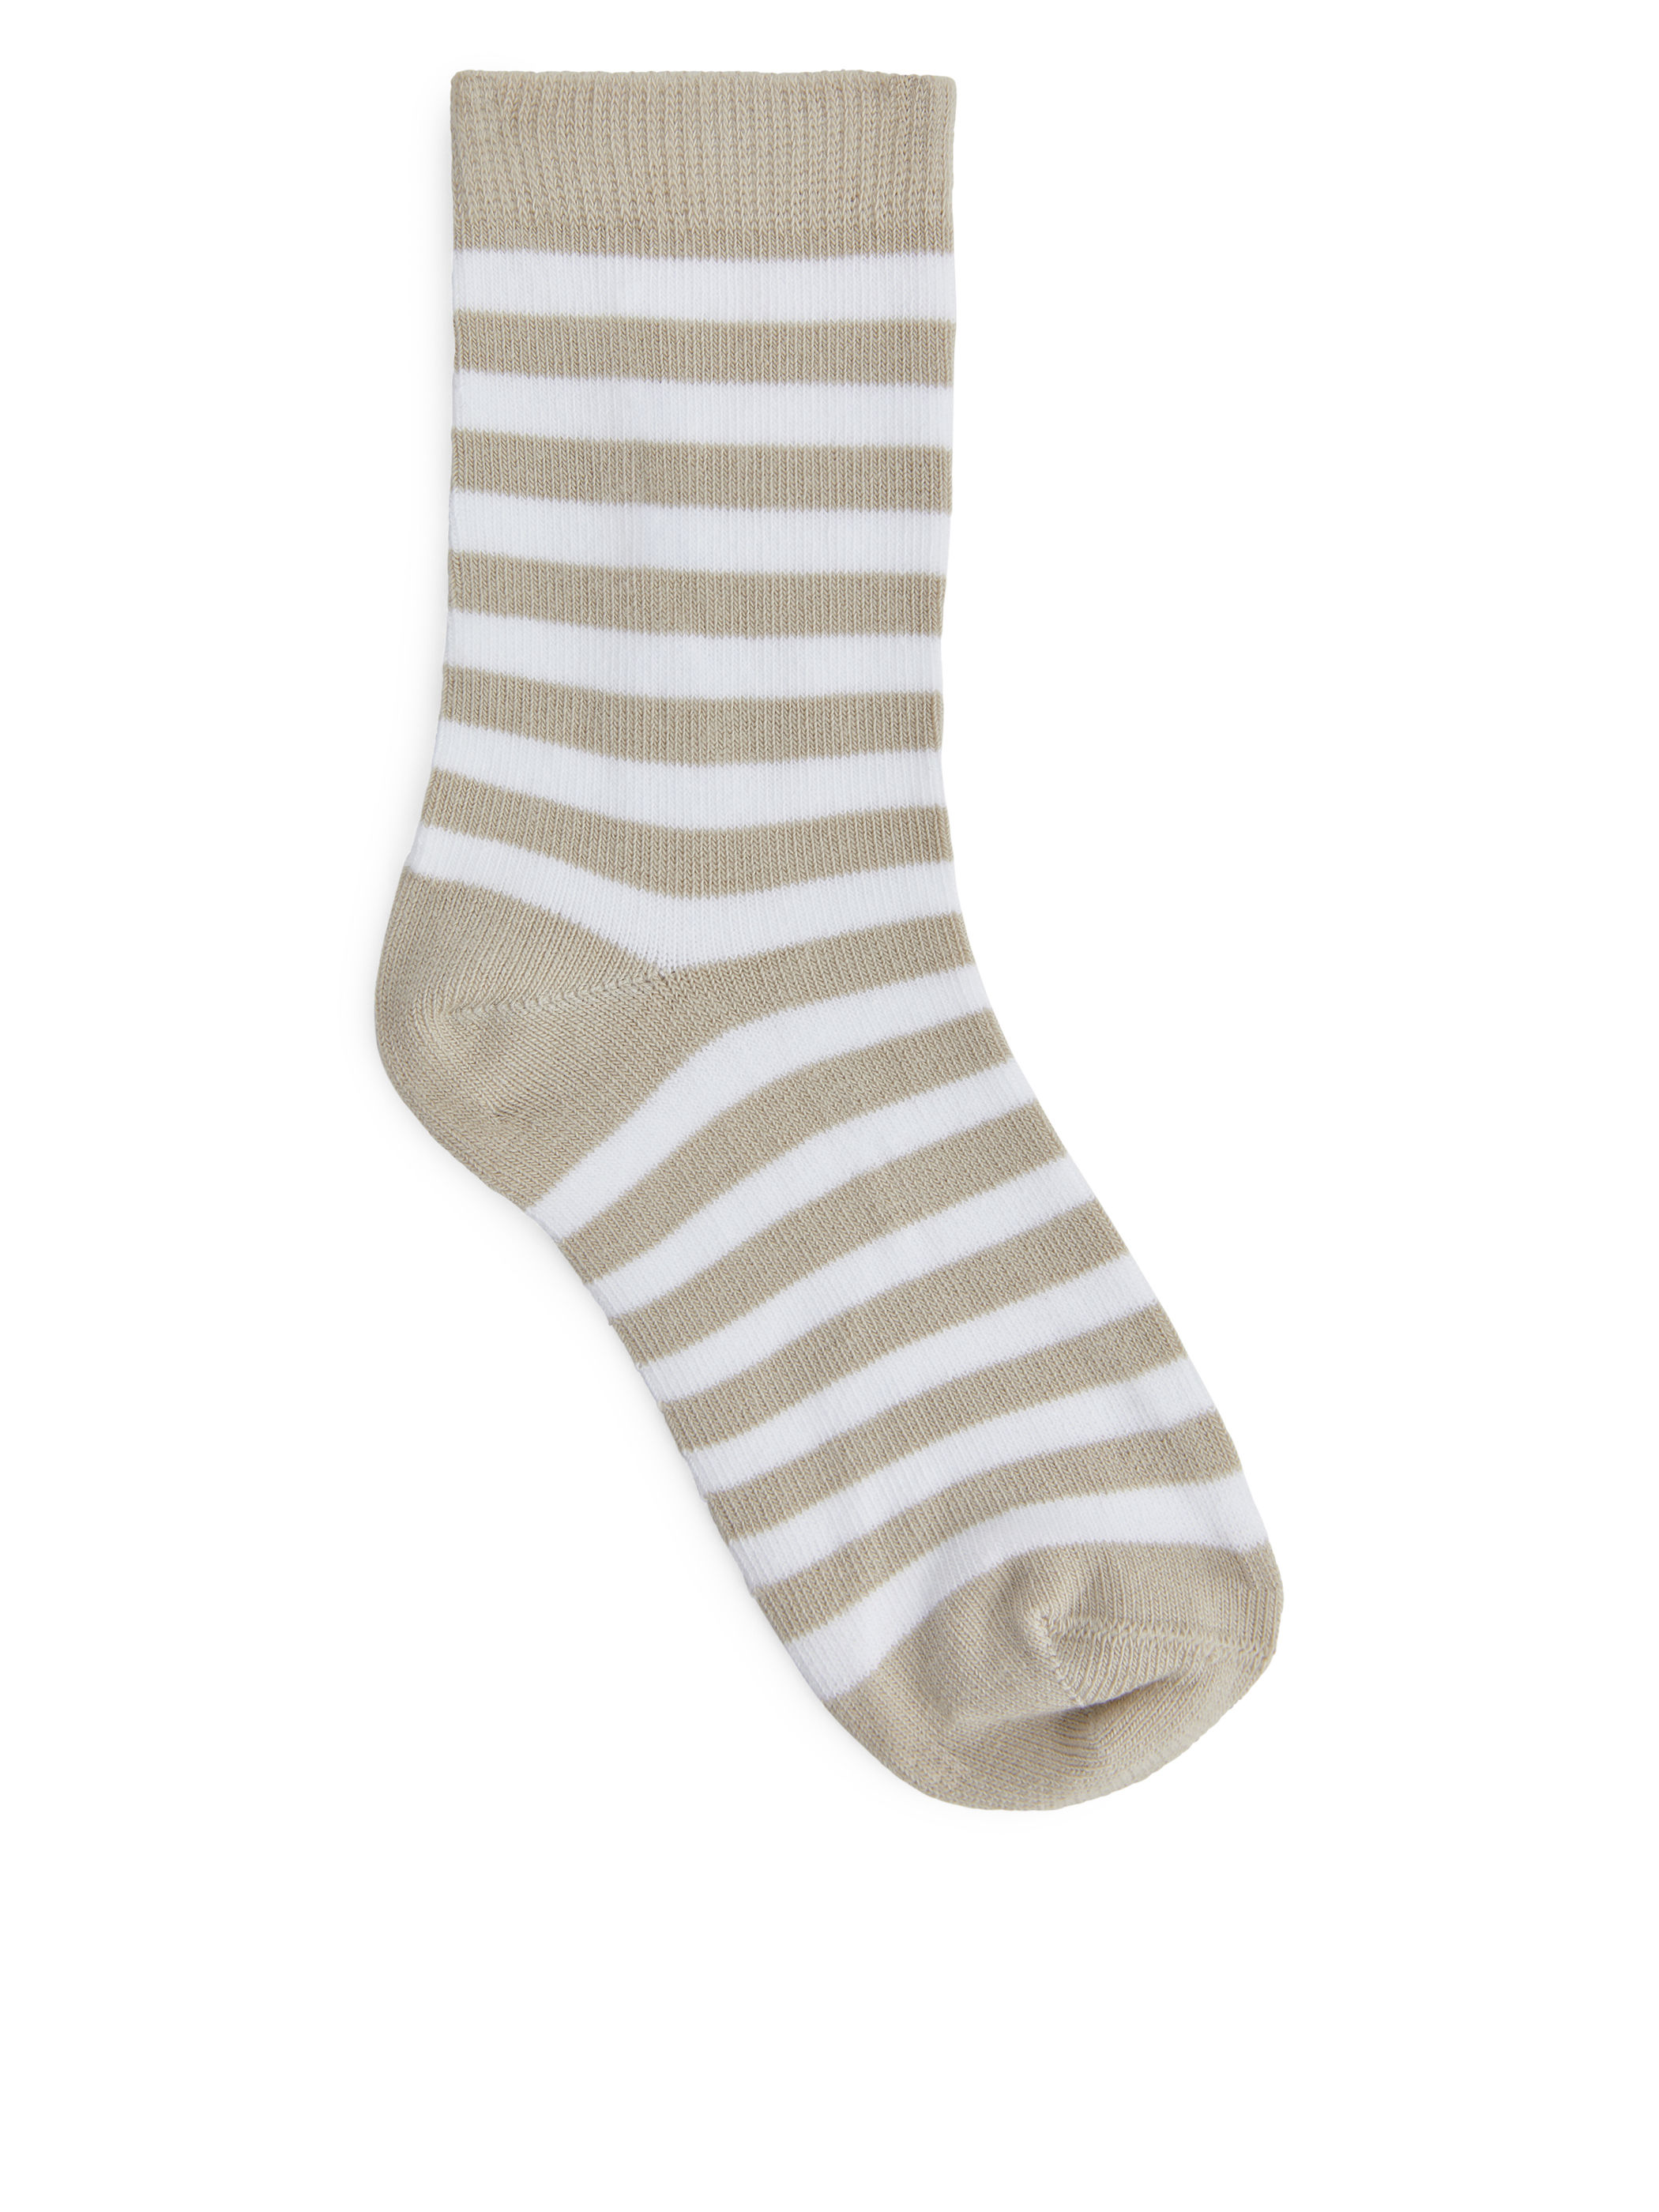 Fabric Swatch image of Arket striped socks, 2-pack in beige